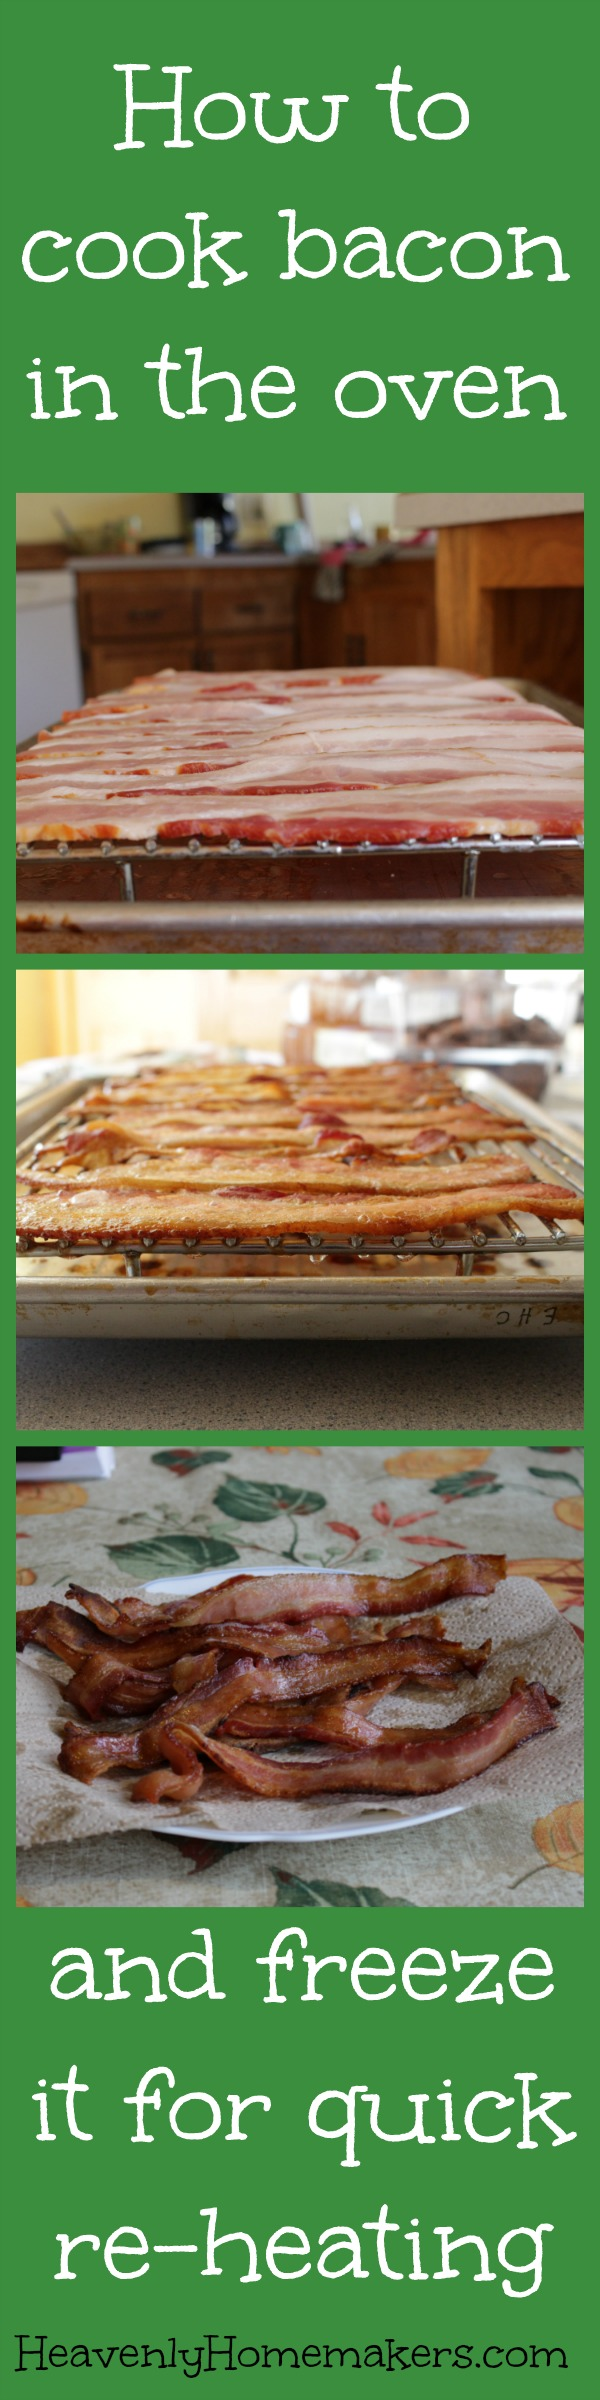 how-to-cook-bacon-in-the-oven-and-freeze-it-for-quick-reheating